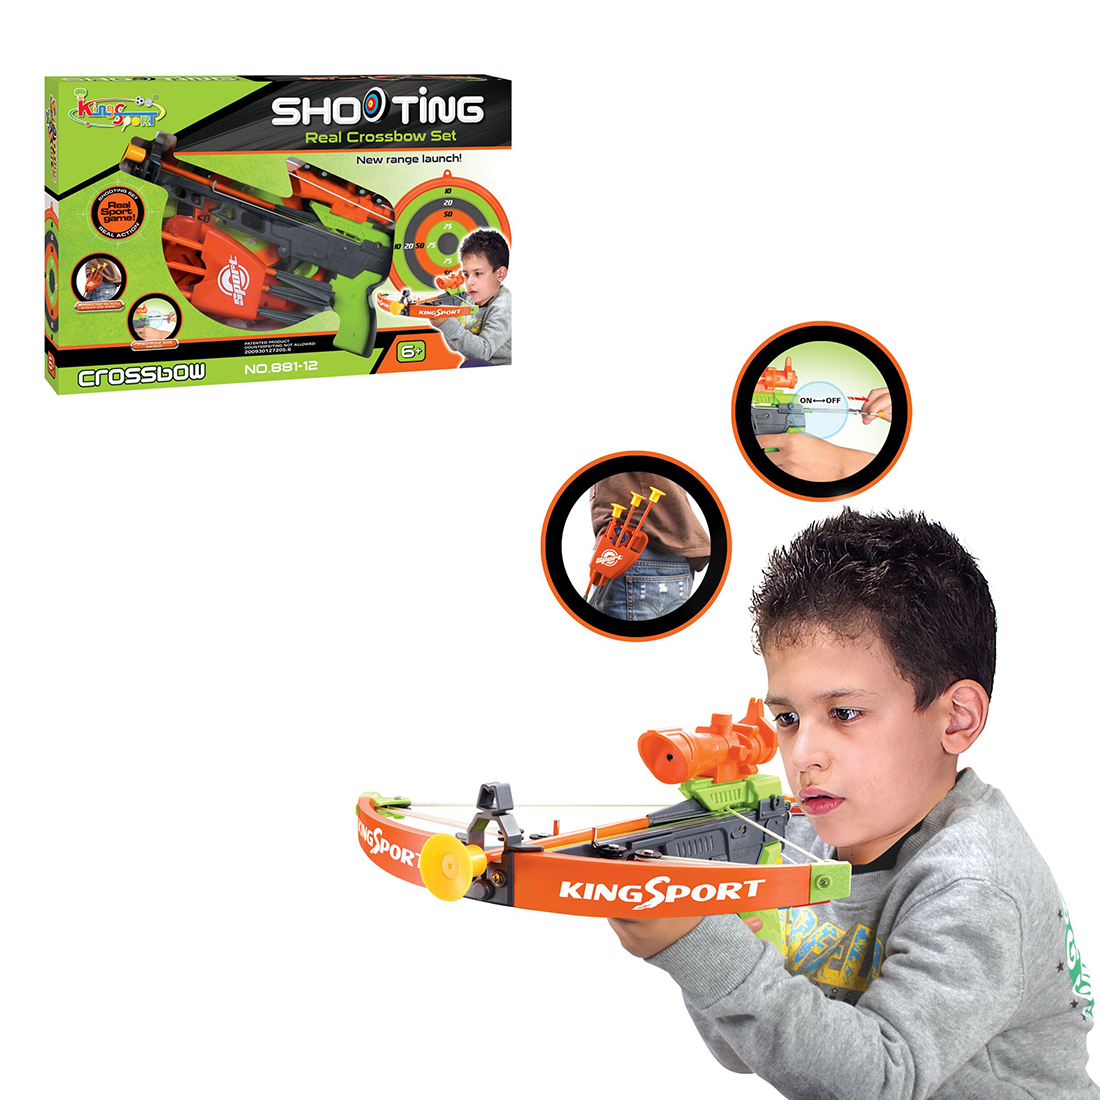 Surwish Children Outdoor Simulation Bow and Crossbow Set with Infrared Lamp Sports Shooting Toys